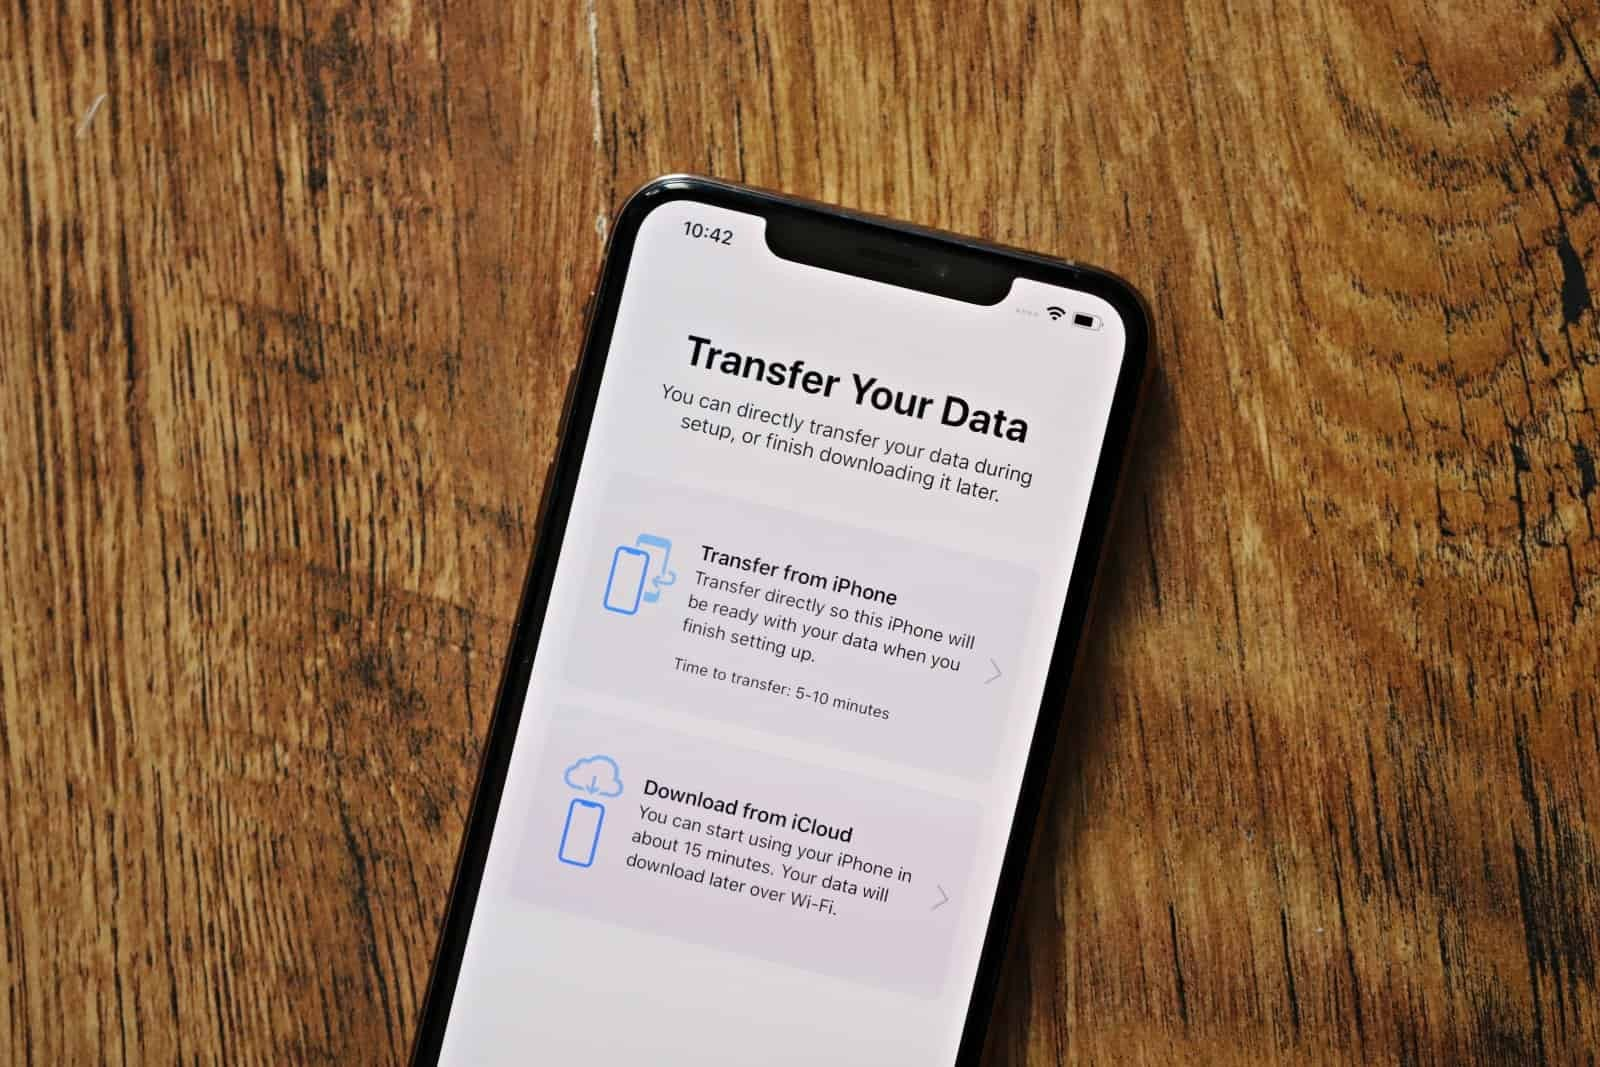 iPhone Transfer Your Data from iPhone directly wireless